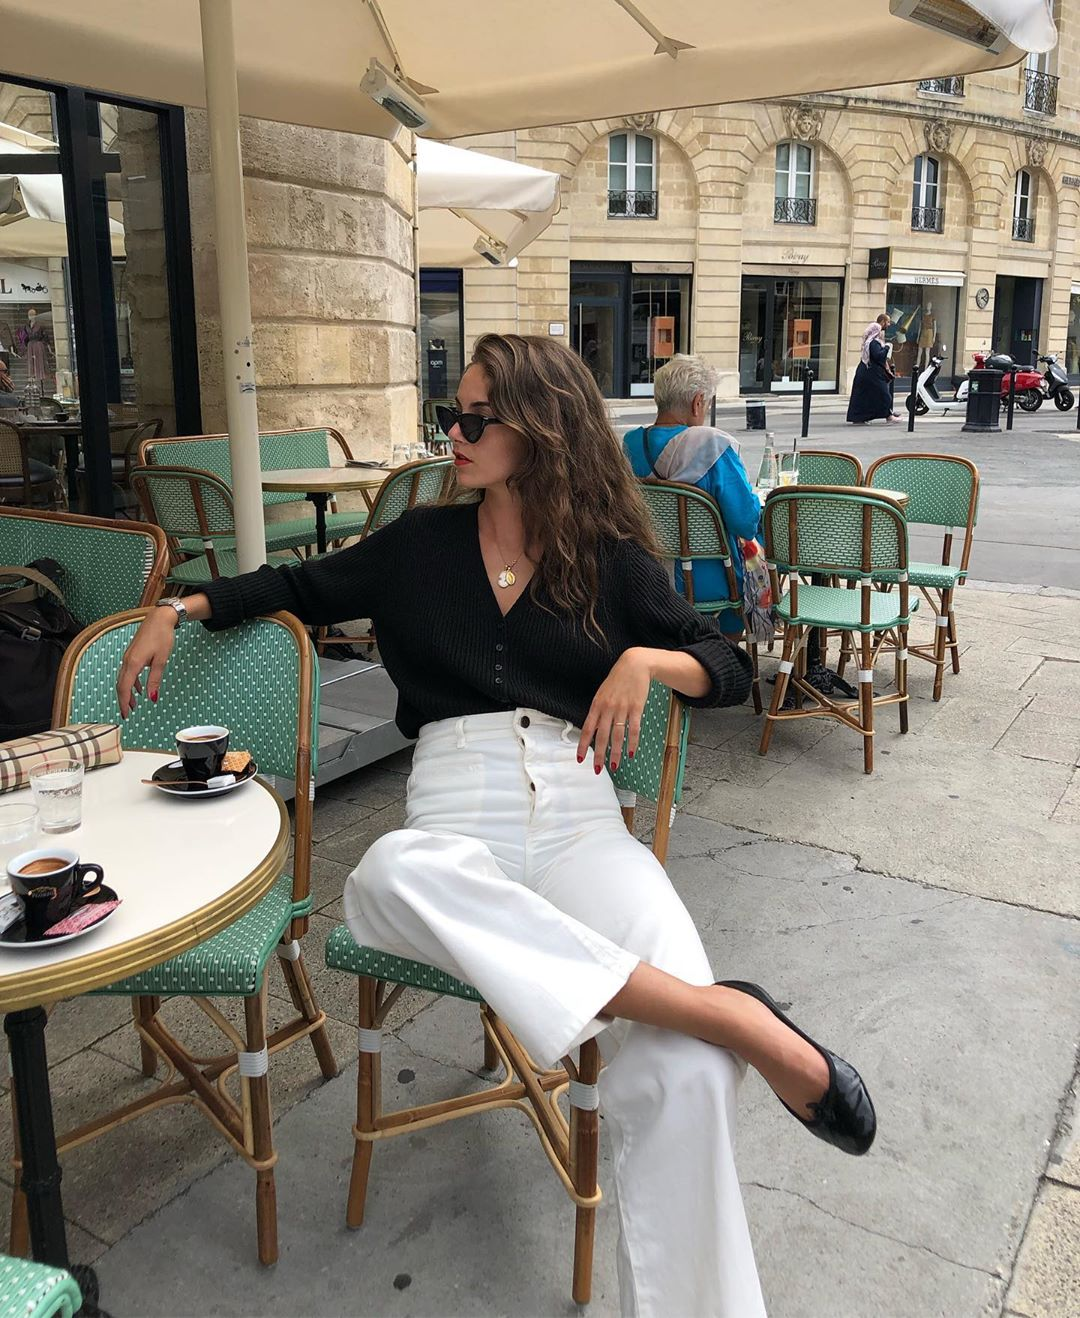 French-Girl Fall Outfit Idea With V-Neck Sweater, High-Waisted White Jeans, and Black Ballet Flats